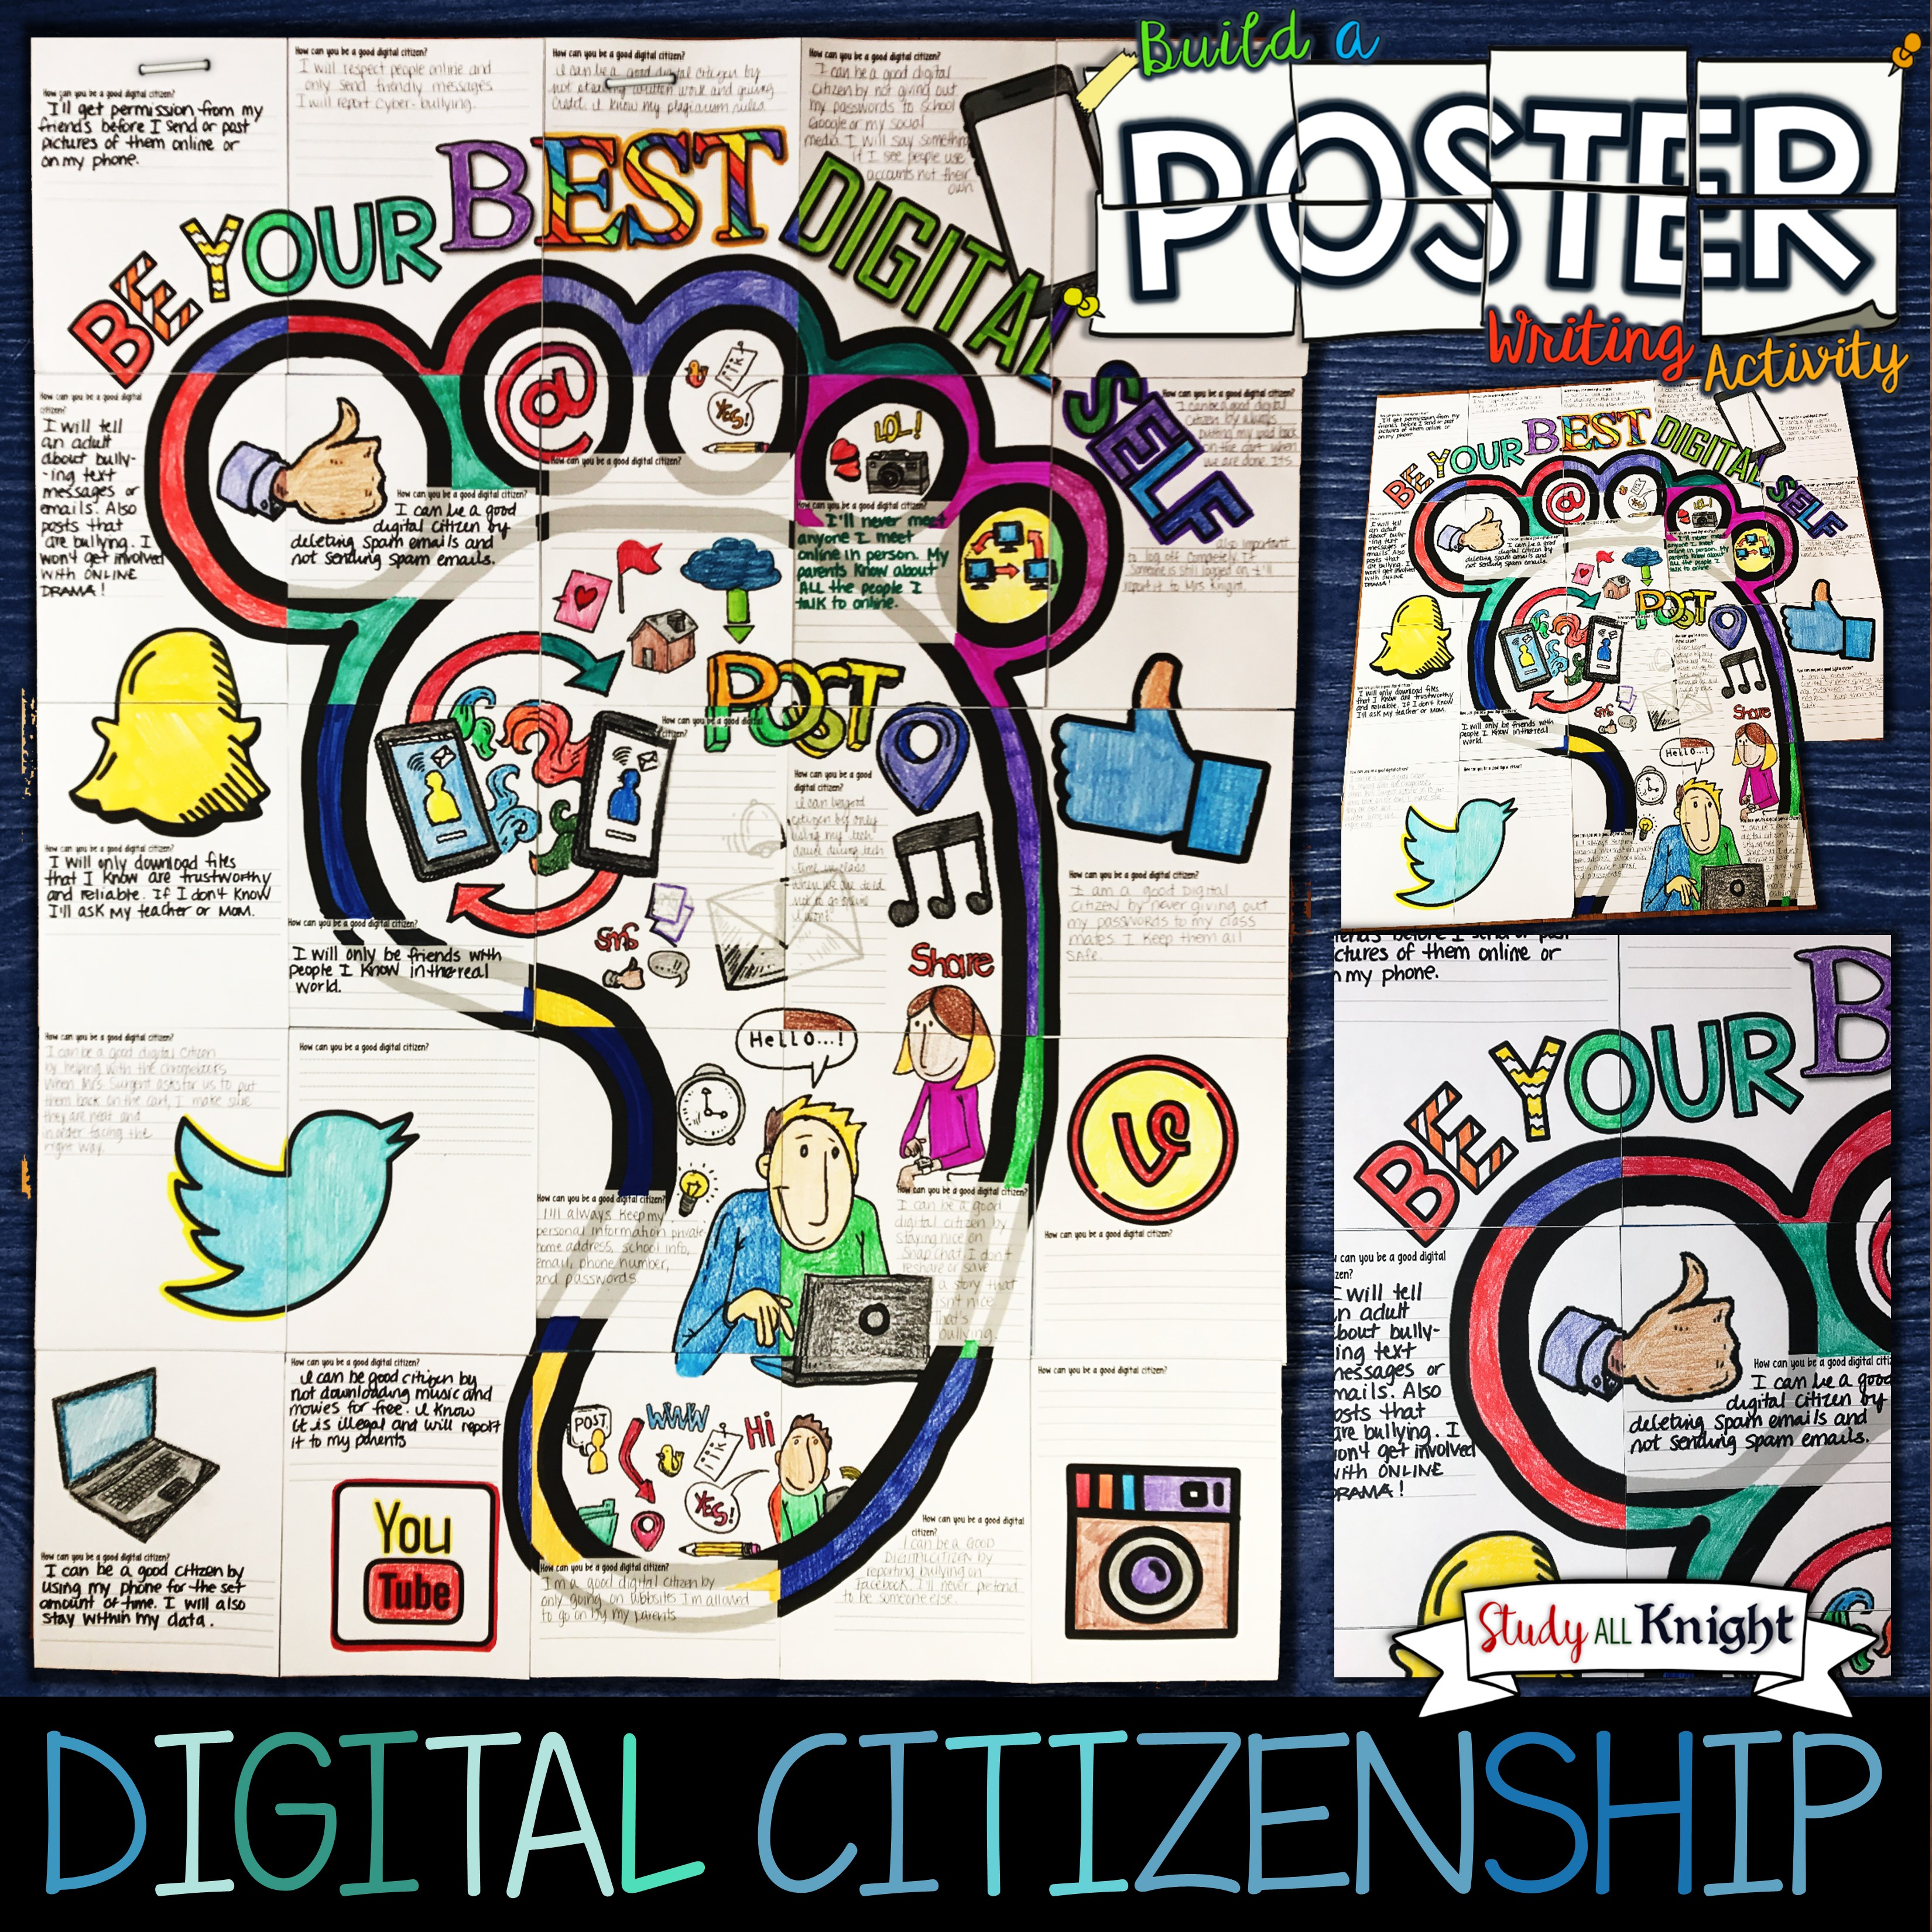 Digital Citizenship Writing Activity Poster Group Collaboration Project